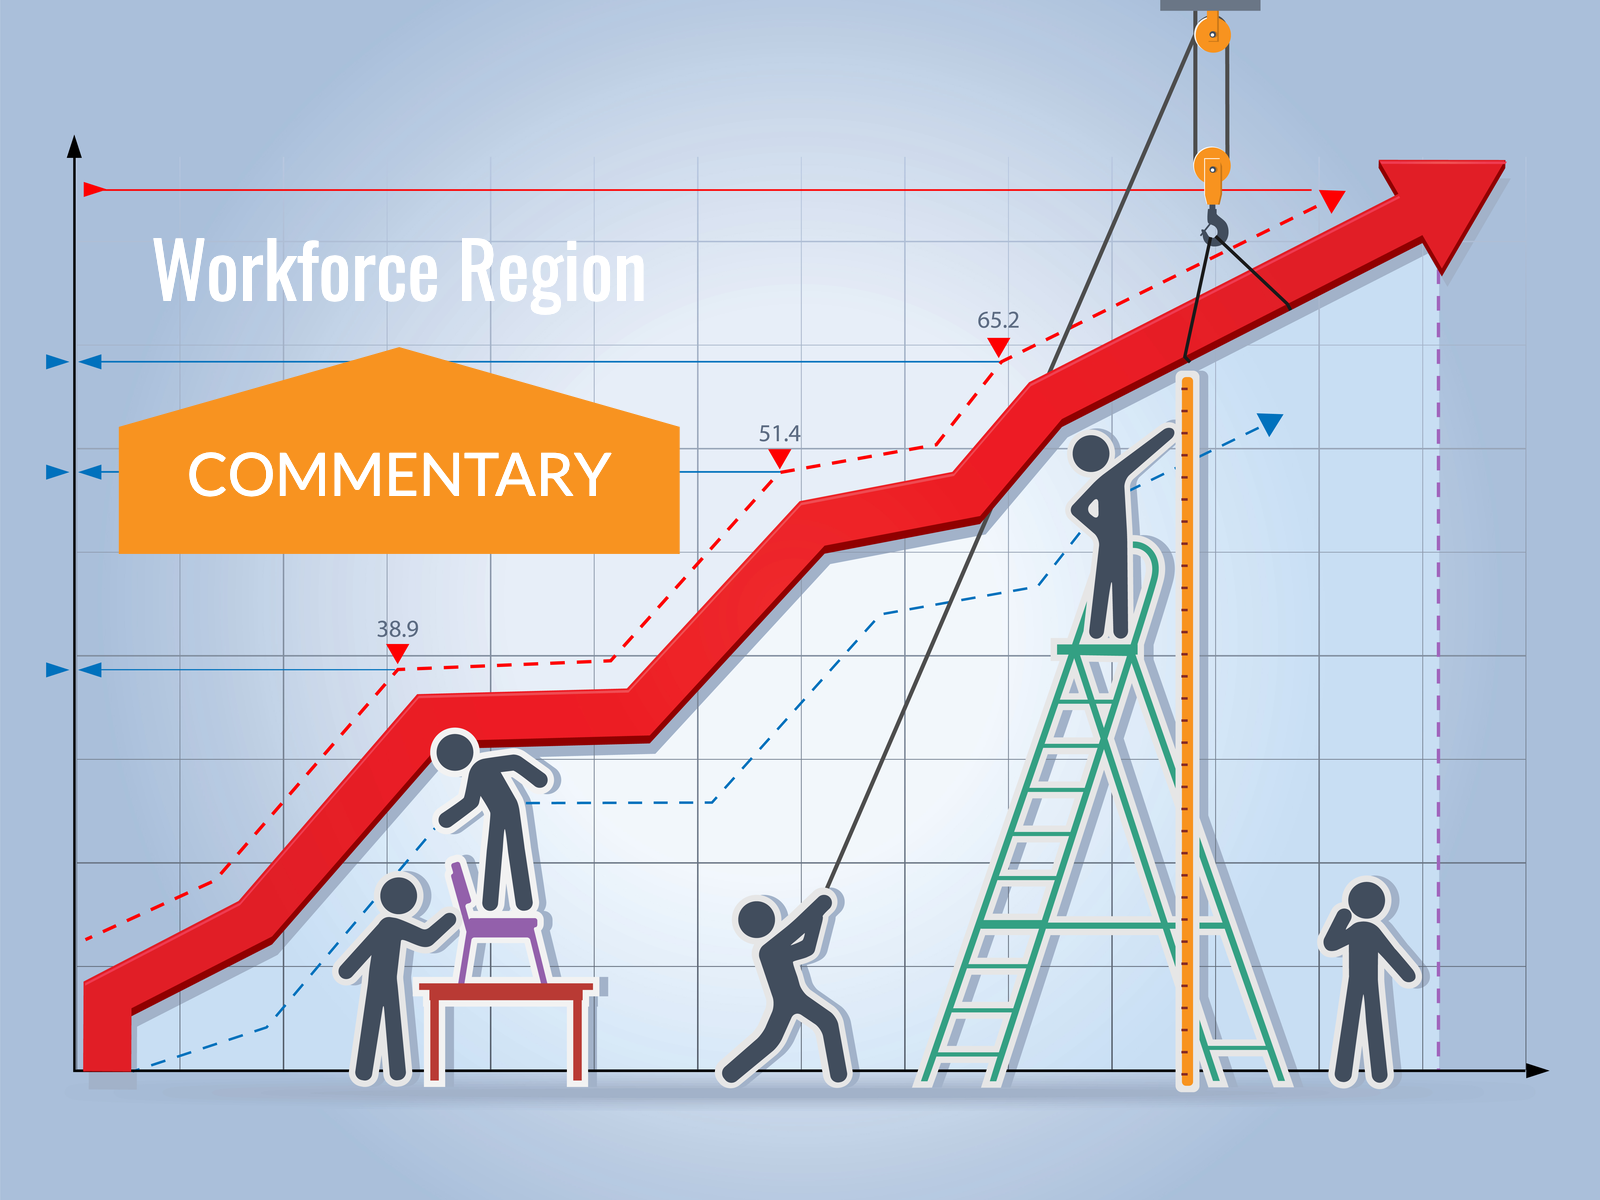 Workforce Commentary